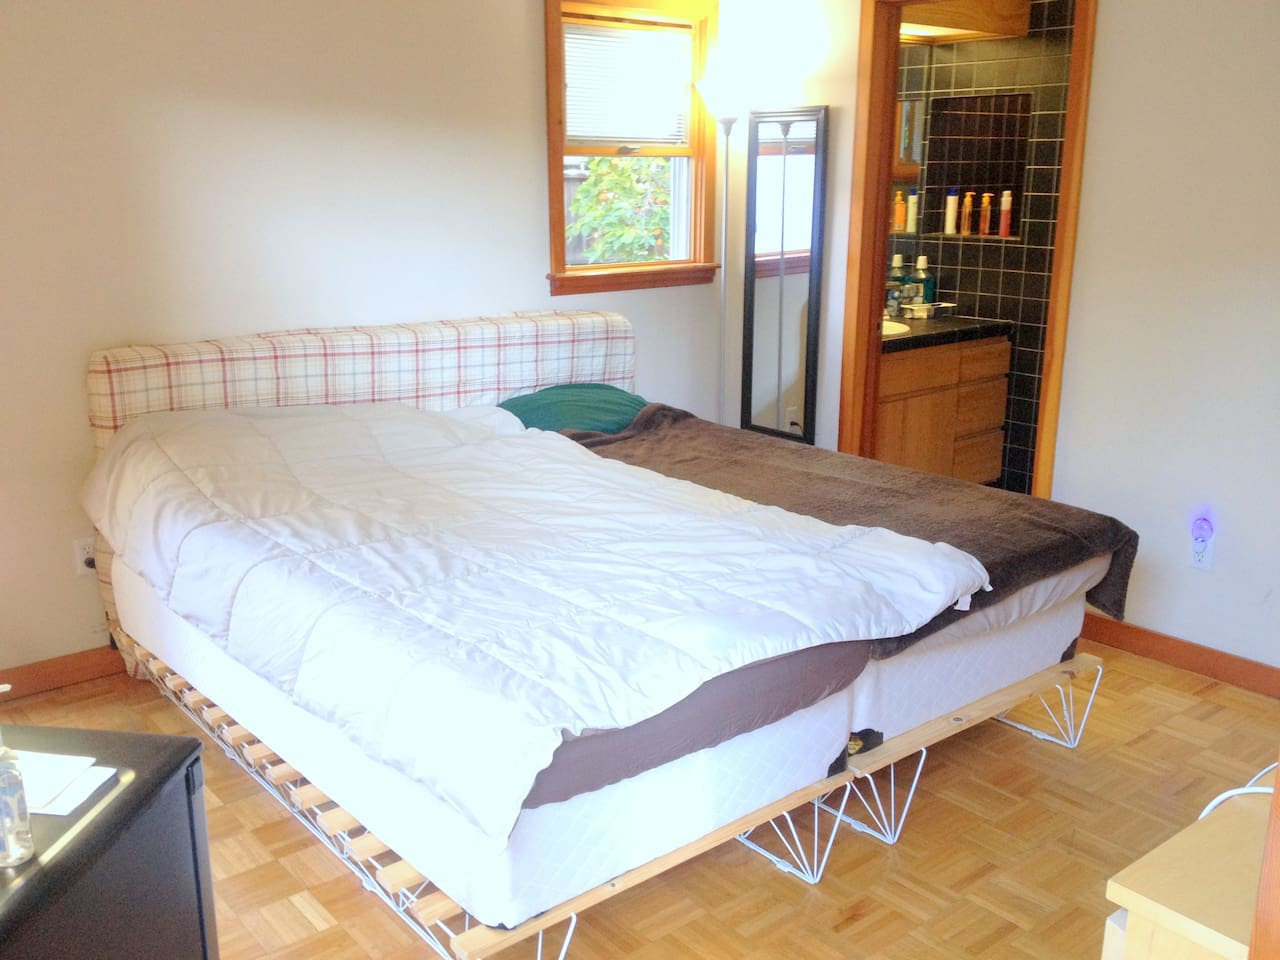 Two twin-size beds